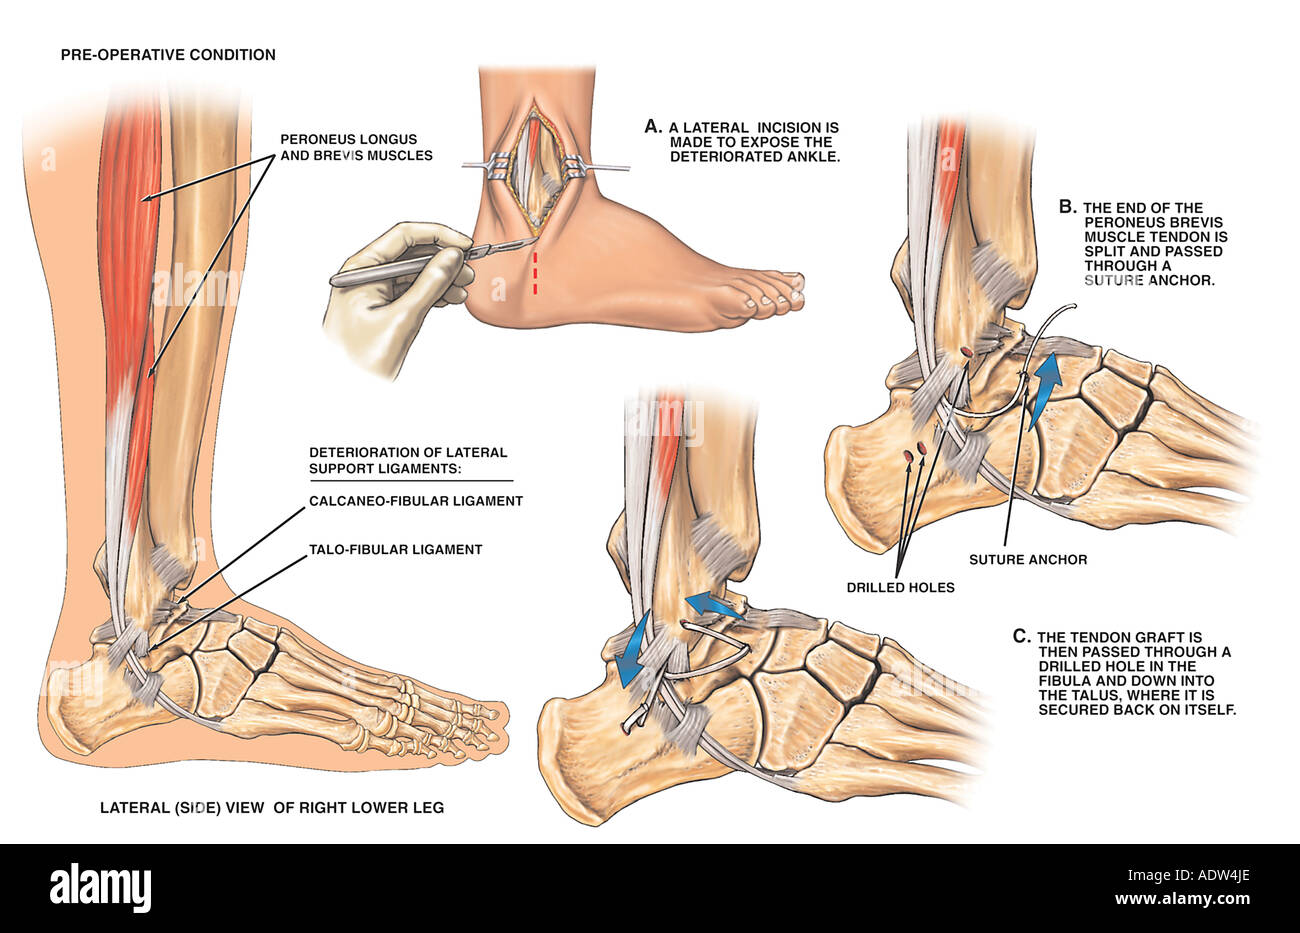 Lateral Ankle Ligament Instability with Surgical Reconstruction - Stock Image